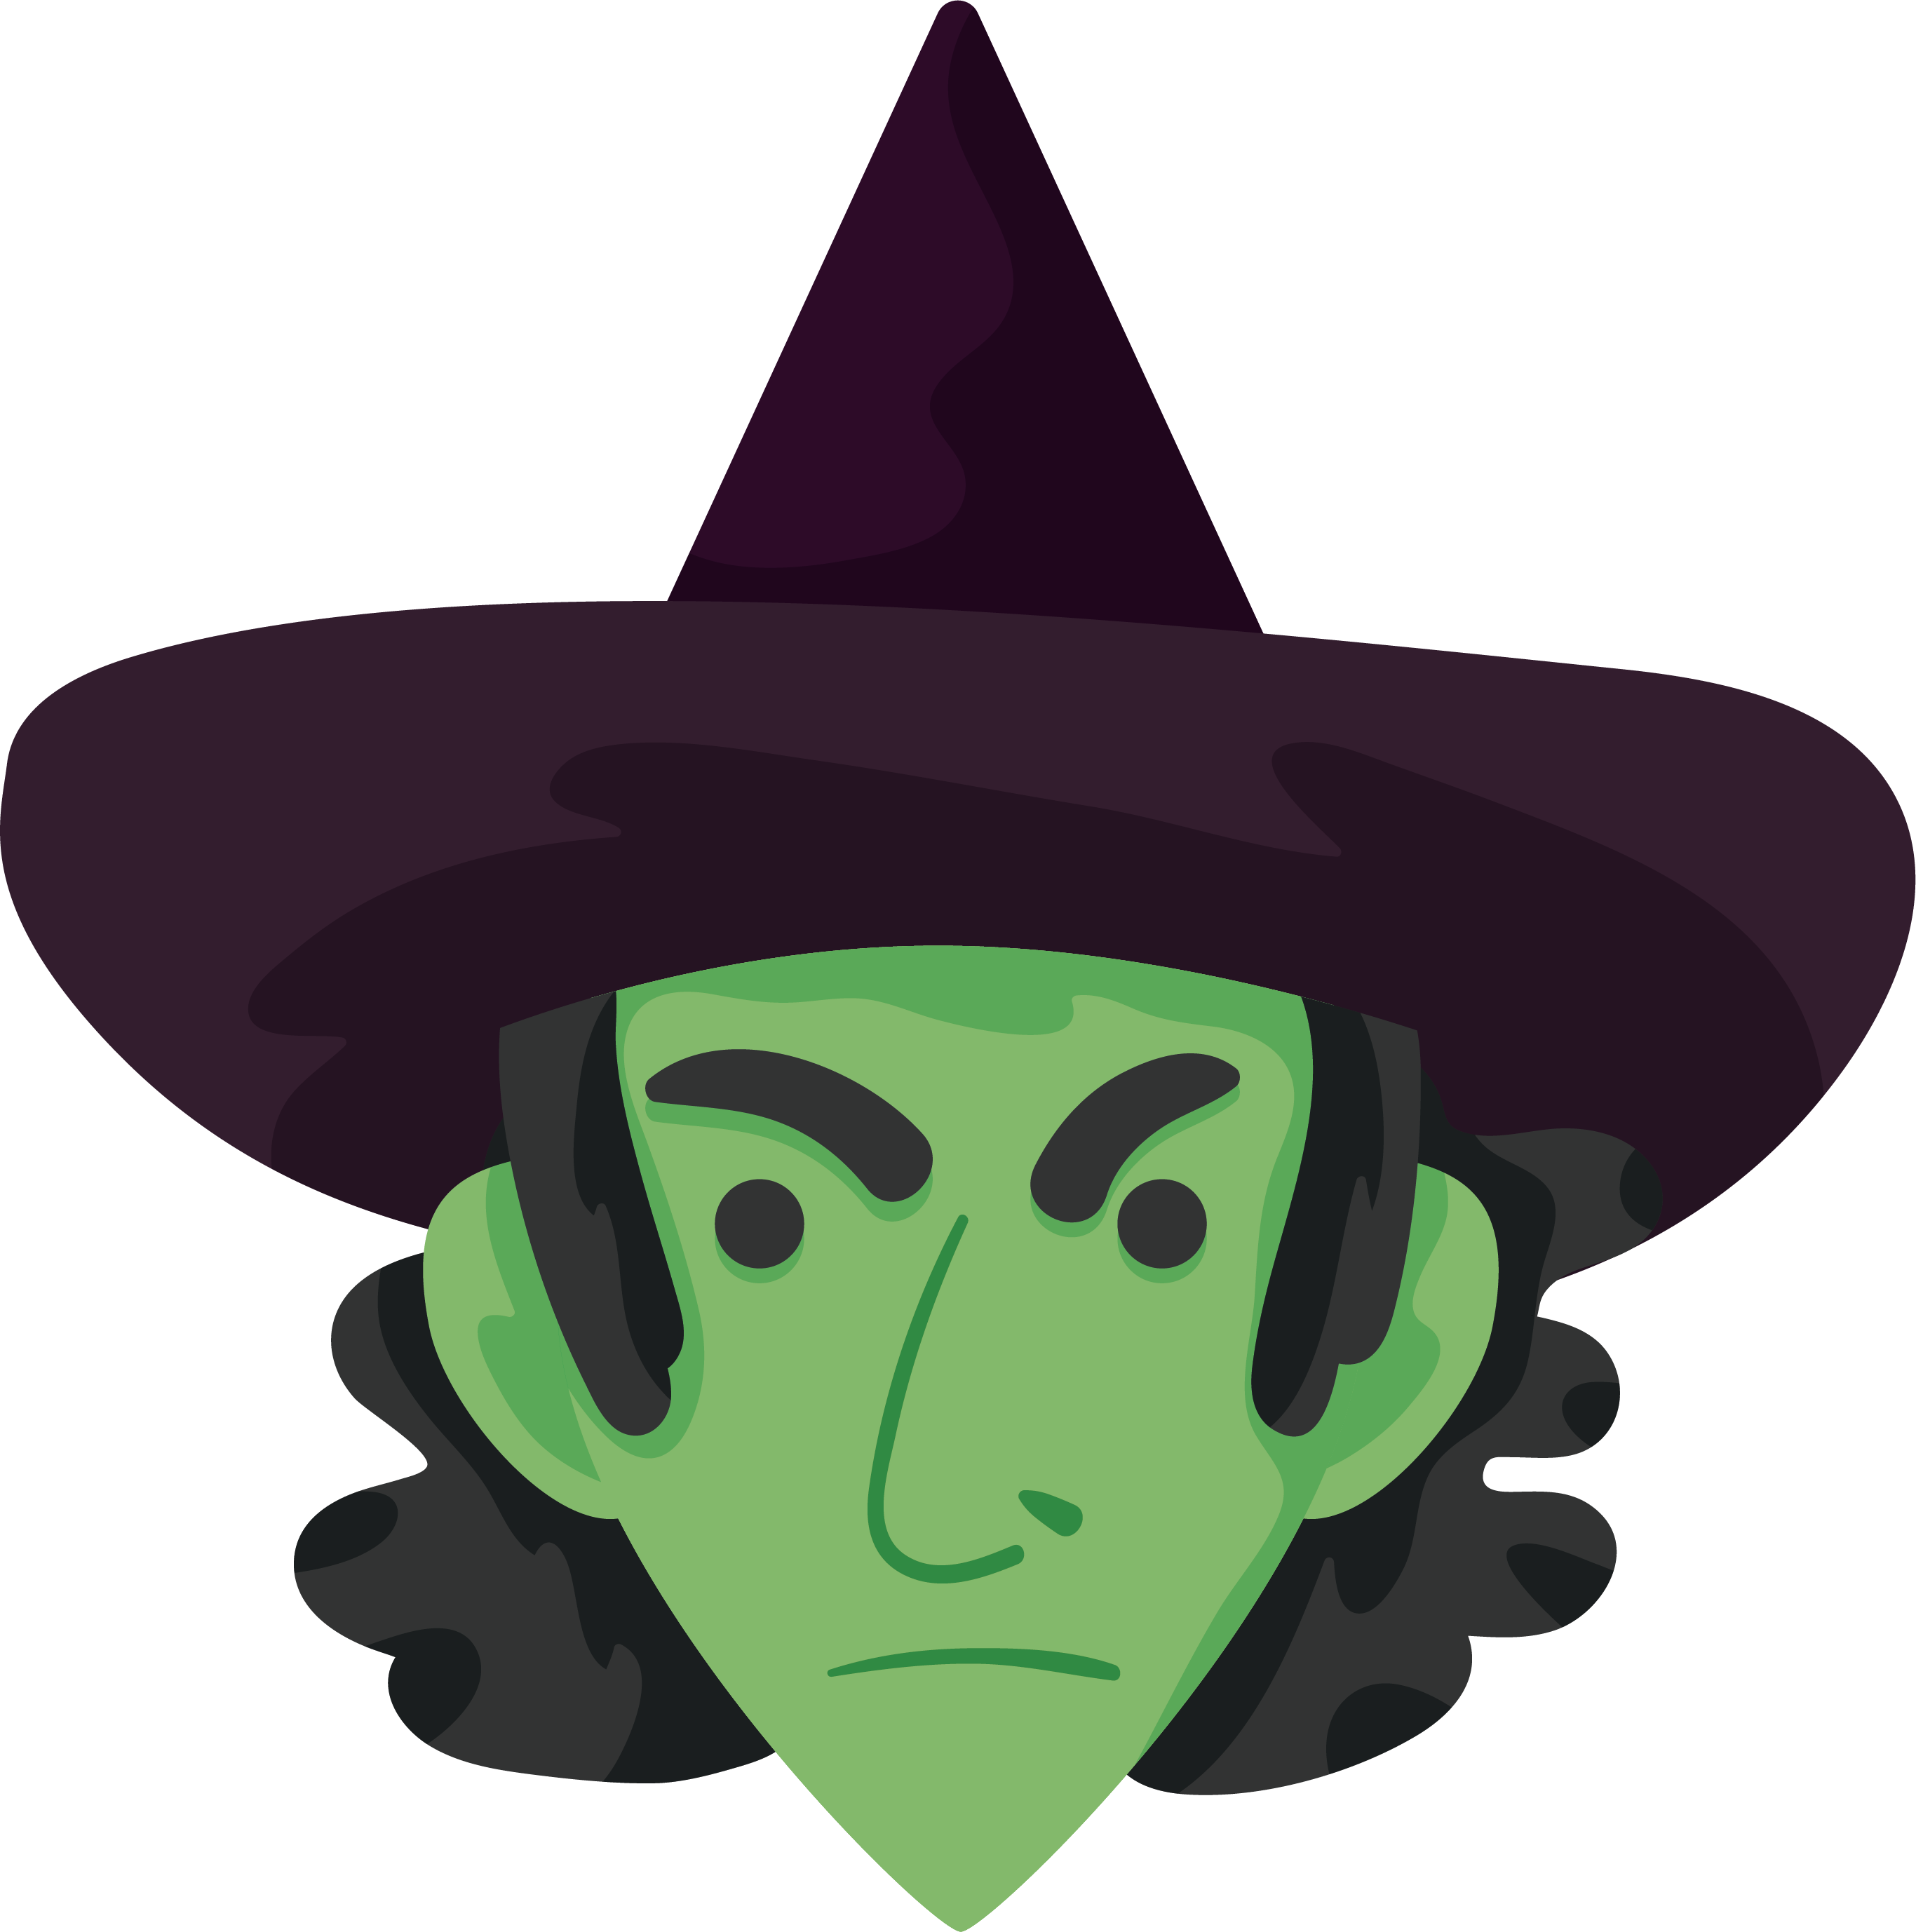 jpg free stock Witchcraft green witch free. Witches clipart bowl